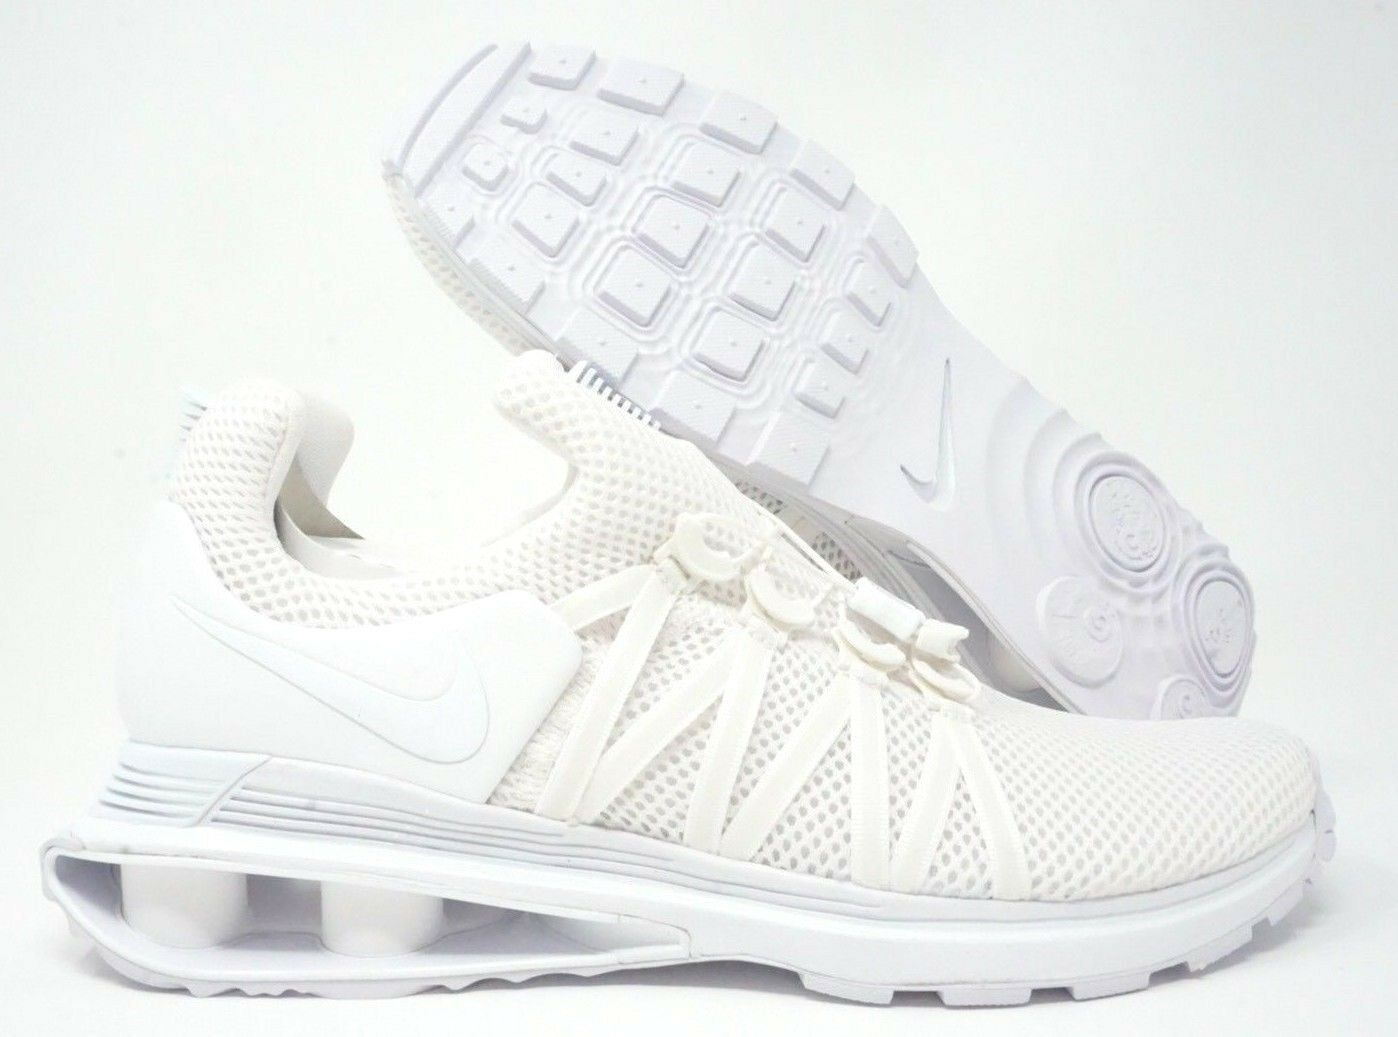 Nike Shox Gravity Mens Running shoes Triple White Size Size Size 10.5 04ee0c